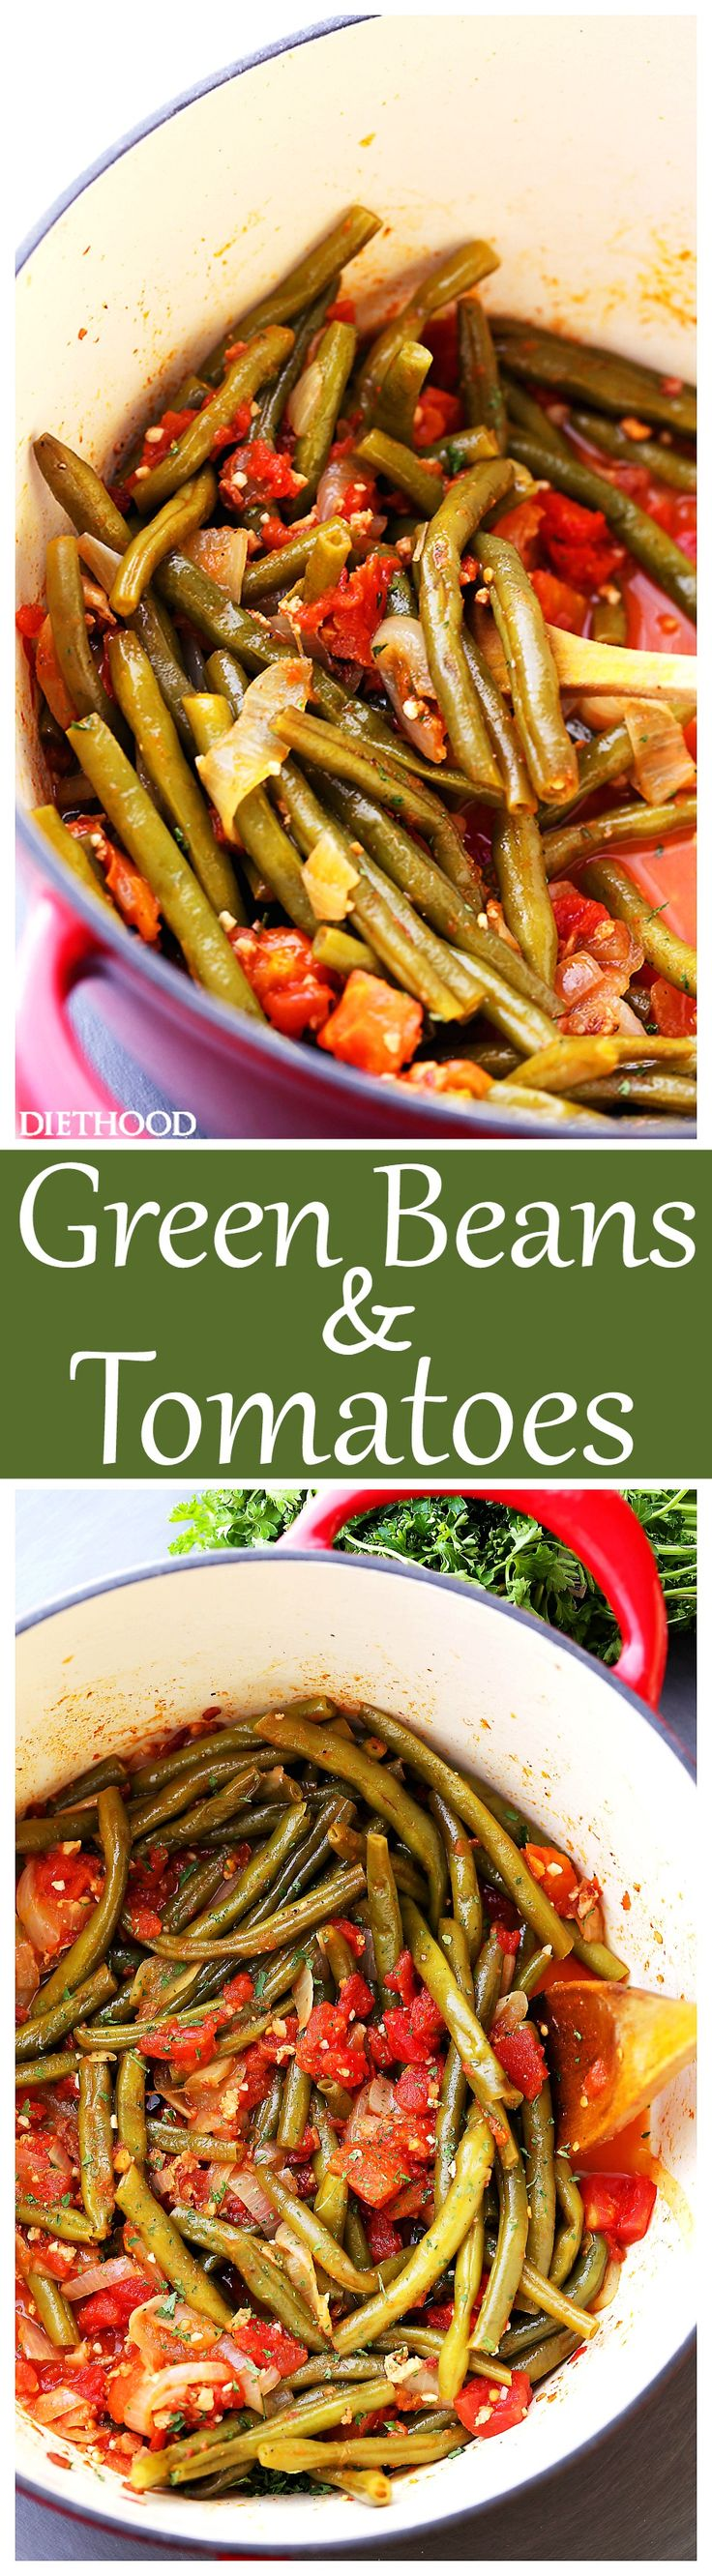 Green Beans and Tomatoes Recipe – Slow cooked green beans with tomatoes, onions and garlic. This easy, yet incredibly flavorful recipe makes for a perfect side dish to any main course. AD HuntsAtHome https://www.pinterest.com/huntschef/